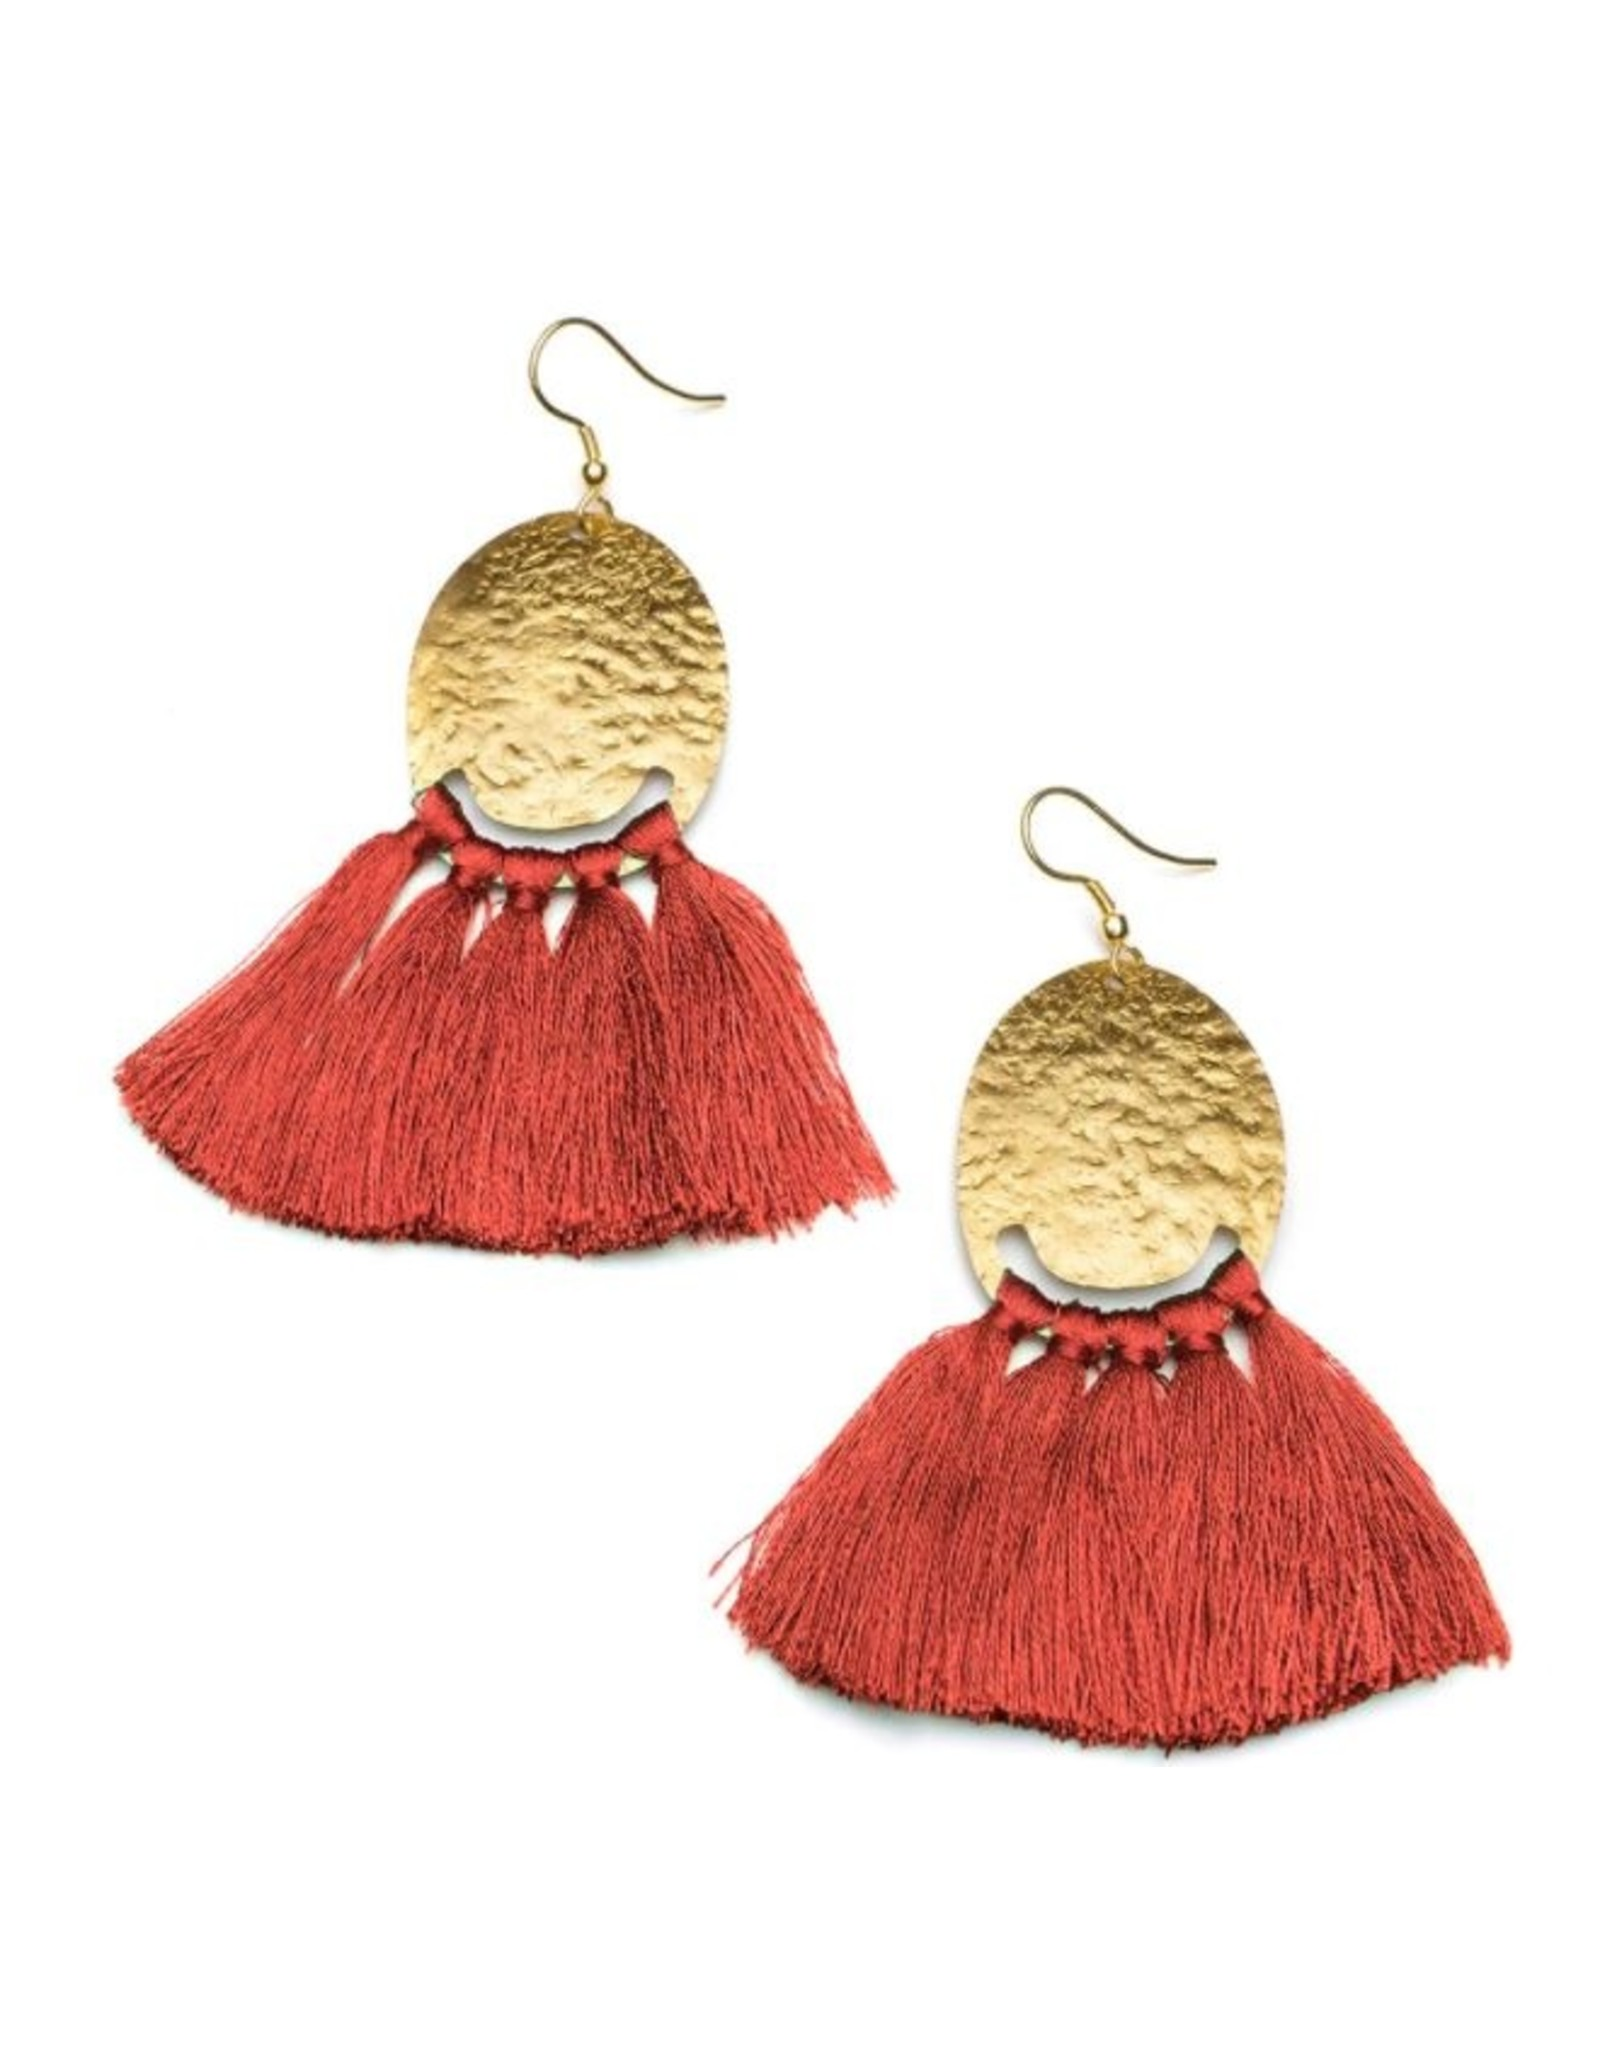 Matr Boomie Nihira Red Tassel Earrings, India